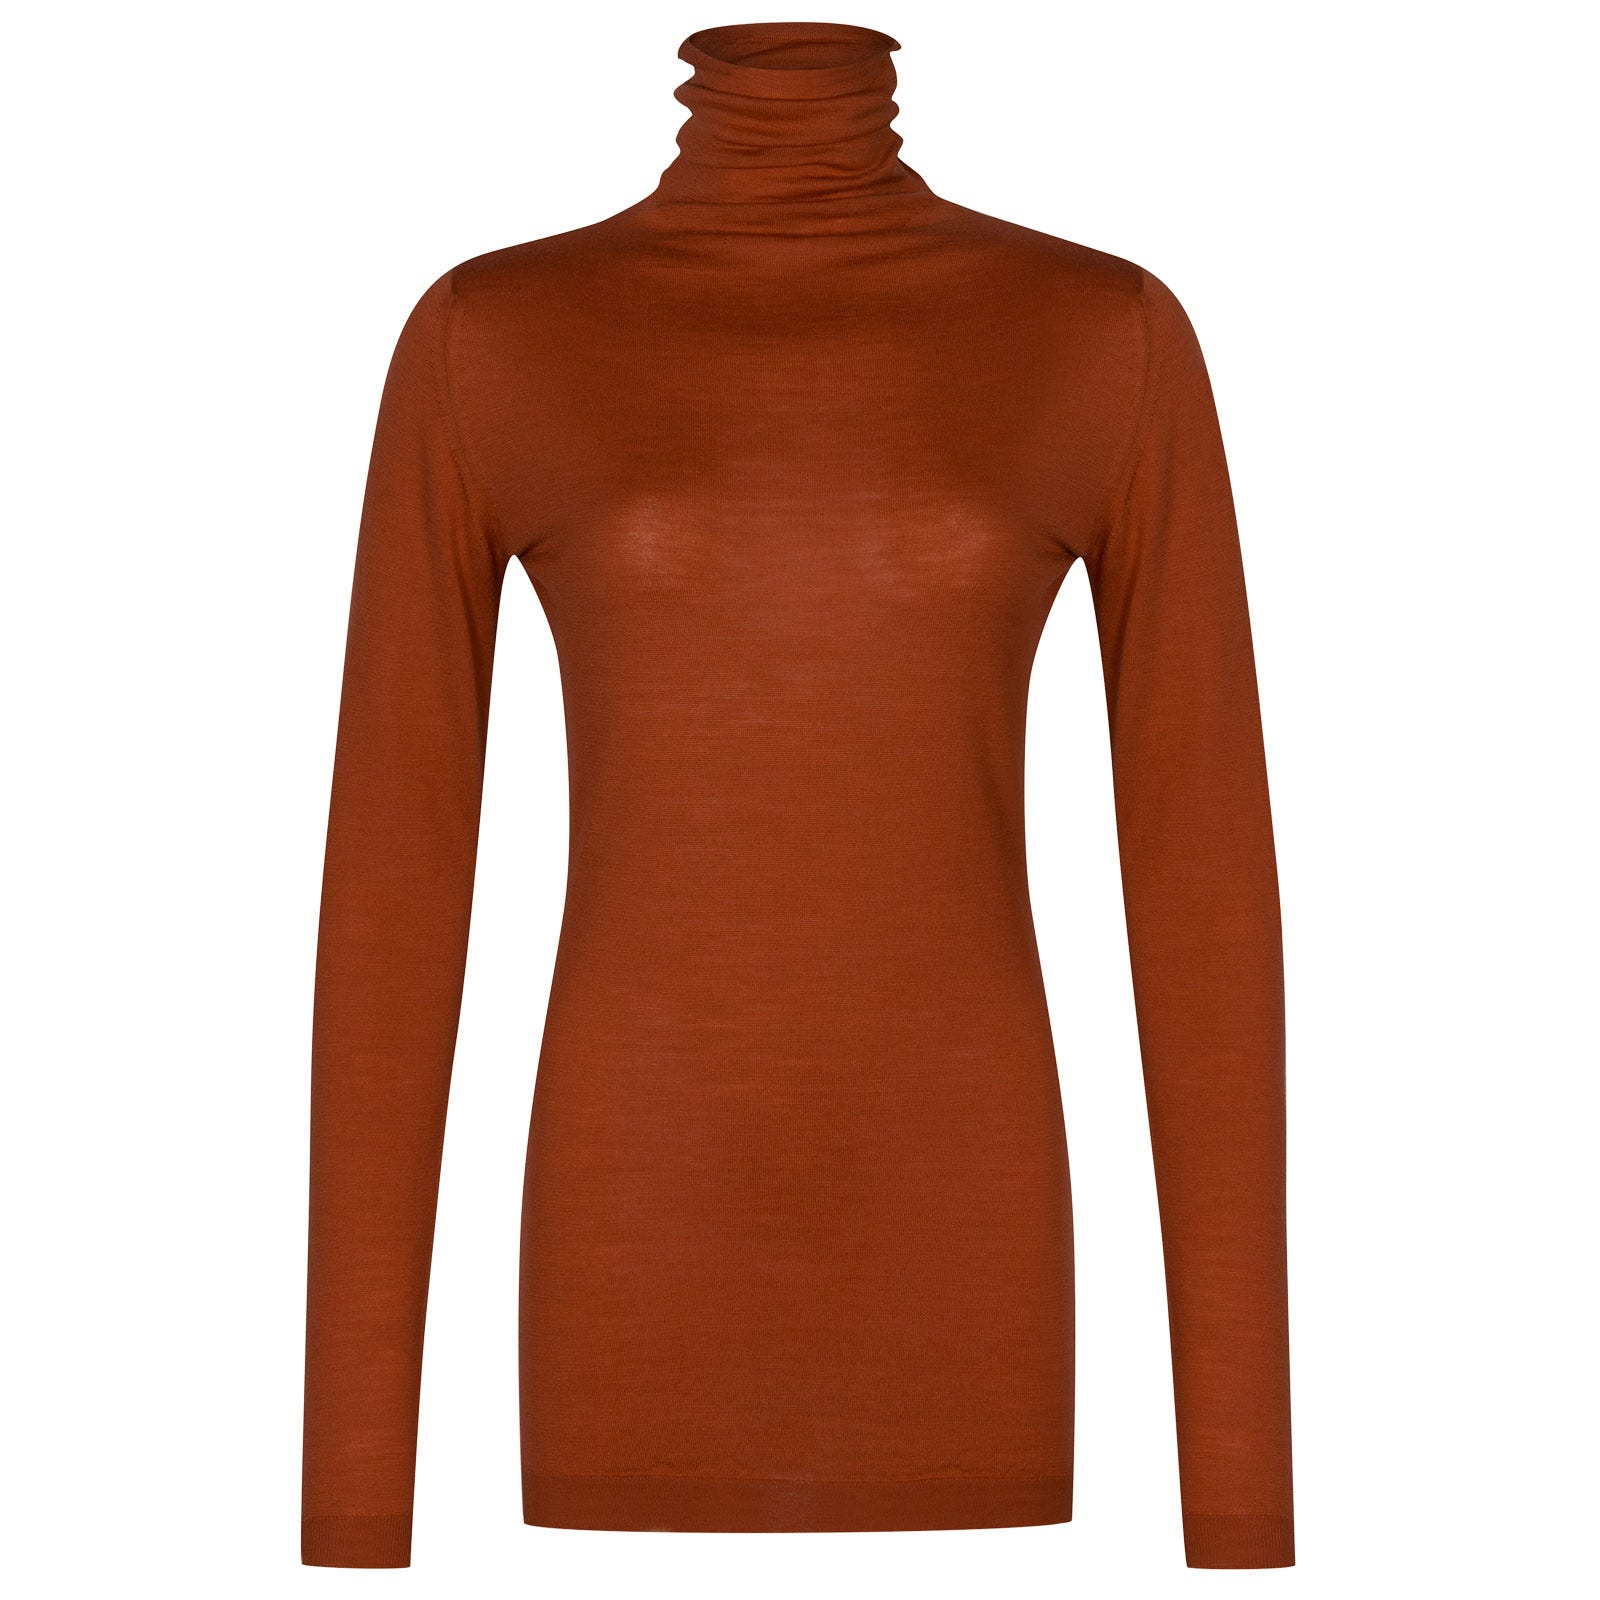 John Smedley westley Merino Wool Sweater in Flare Orange-S